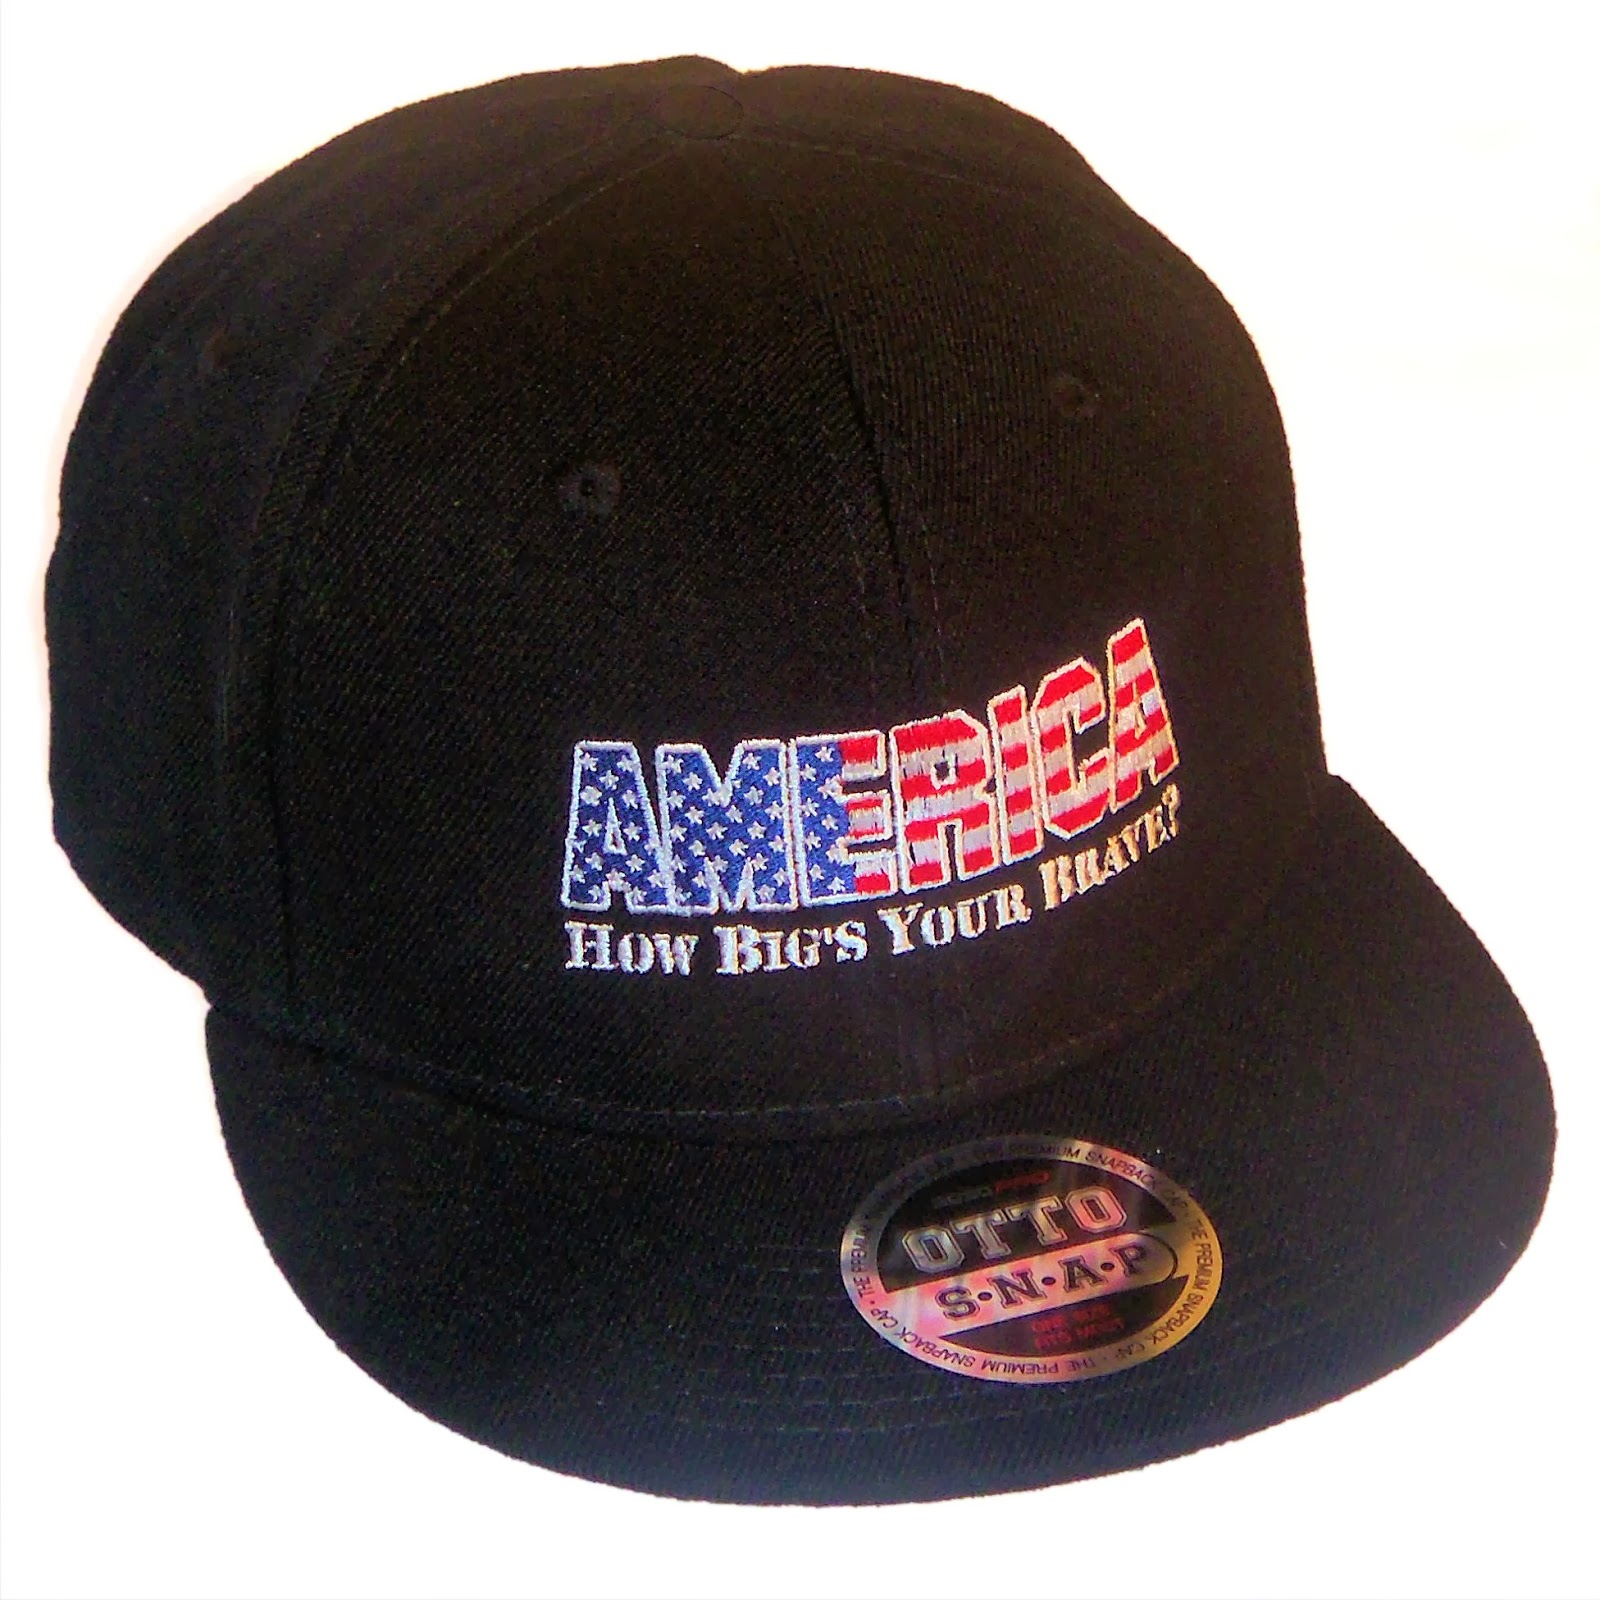 AMERICA How Big's Your Brave Flat Bill Snapback Cap From Edge SST